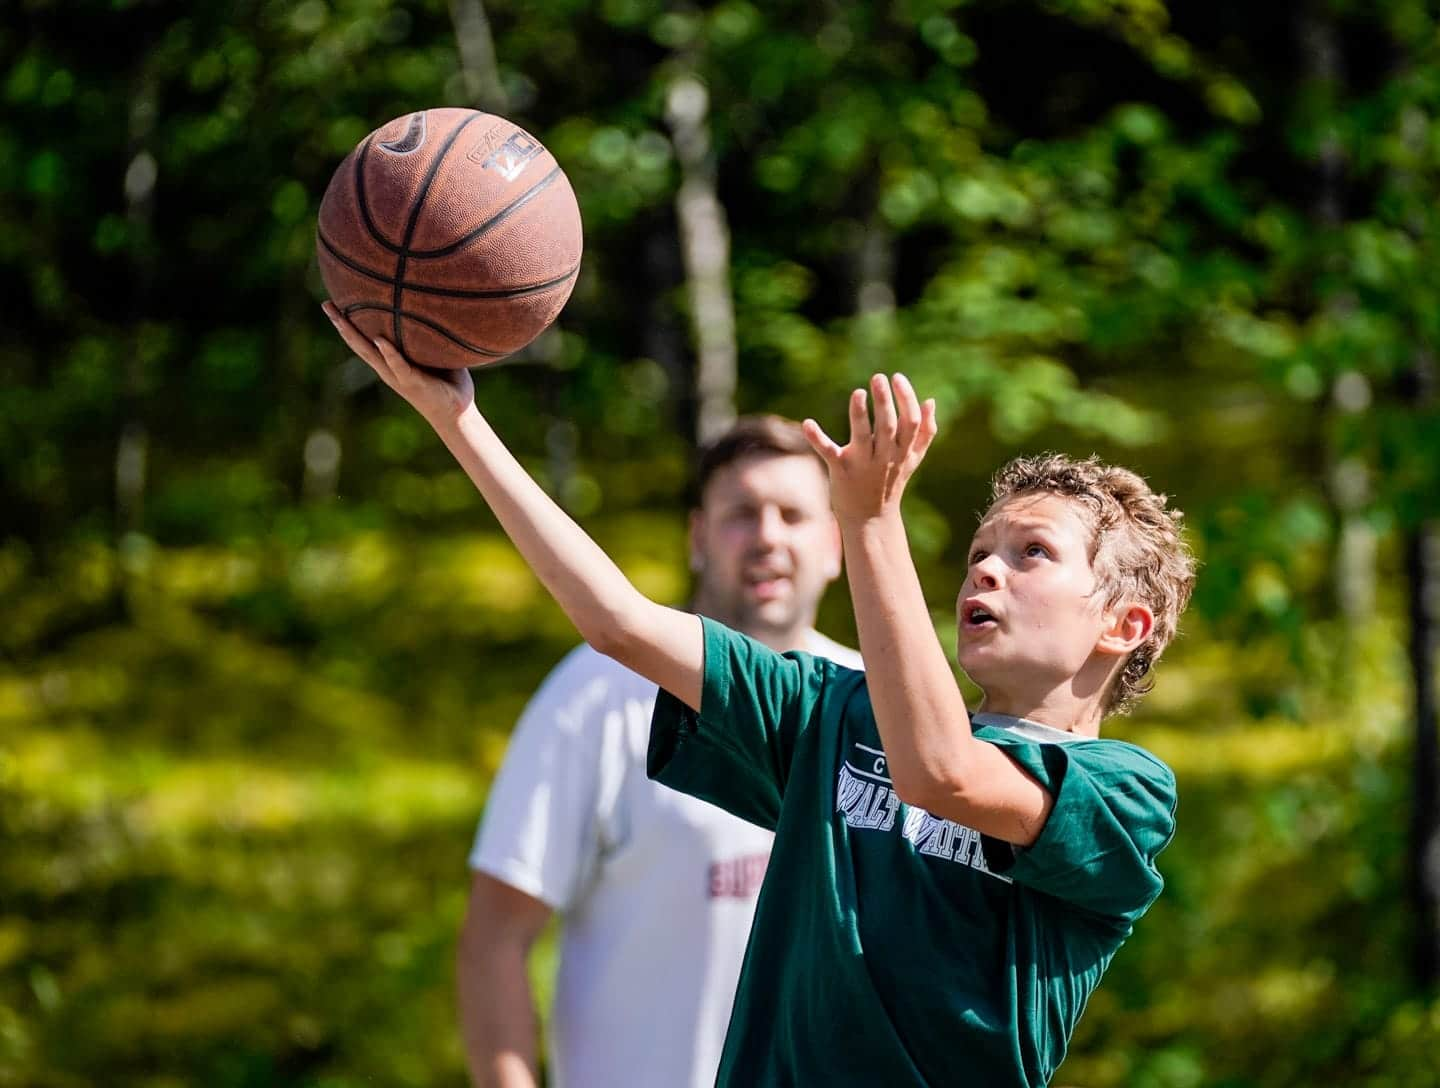 young camper doing a layup